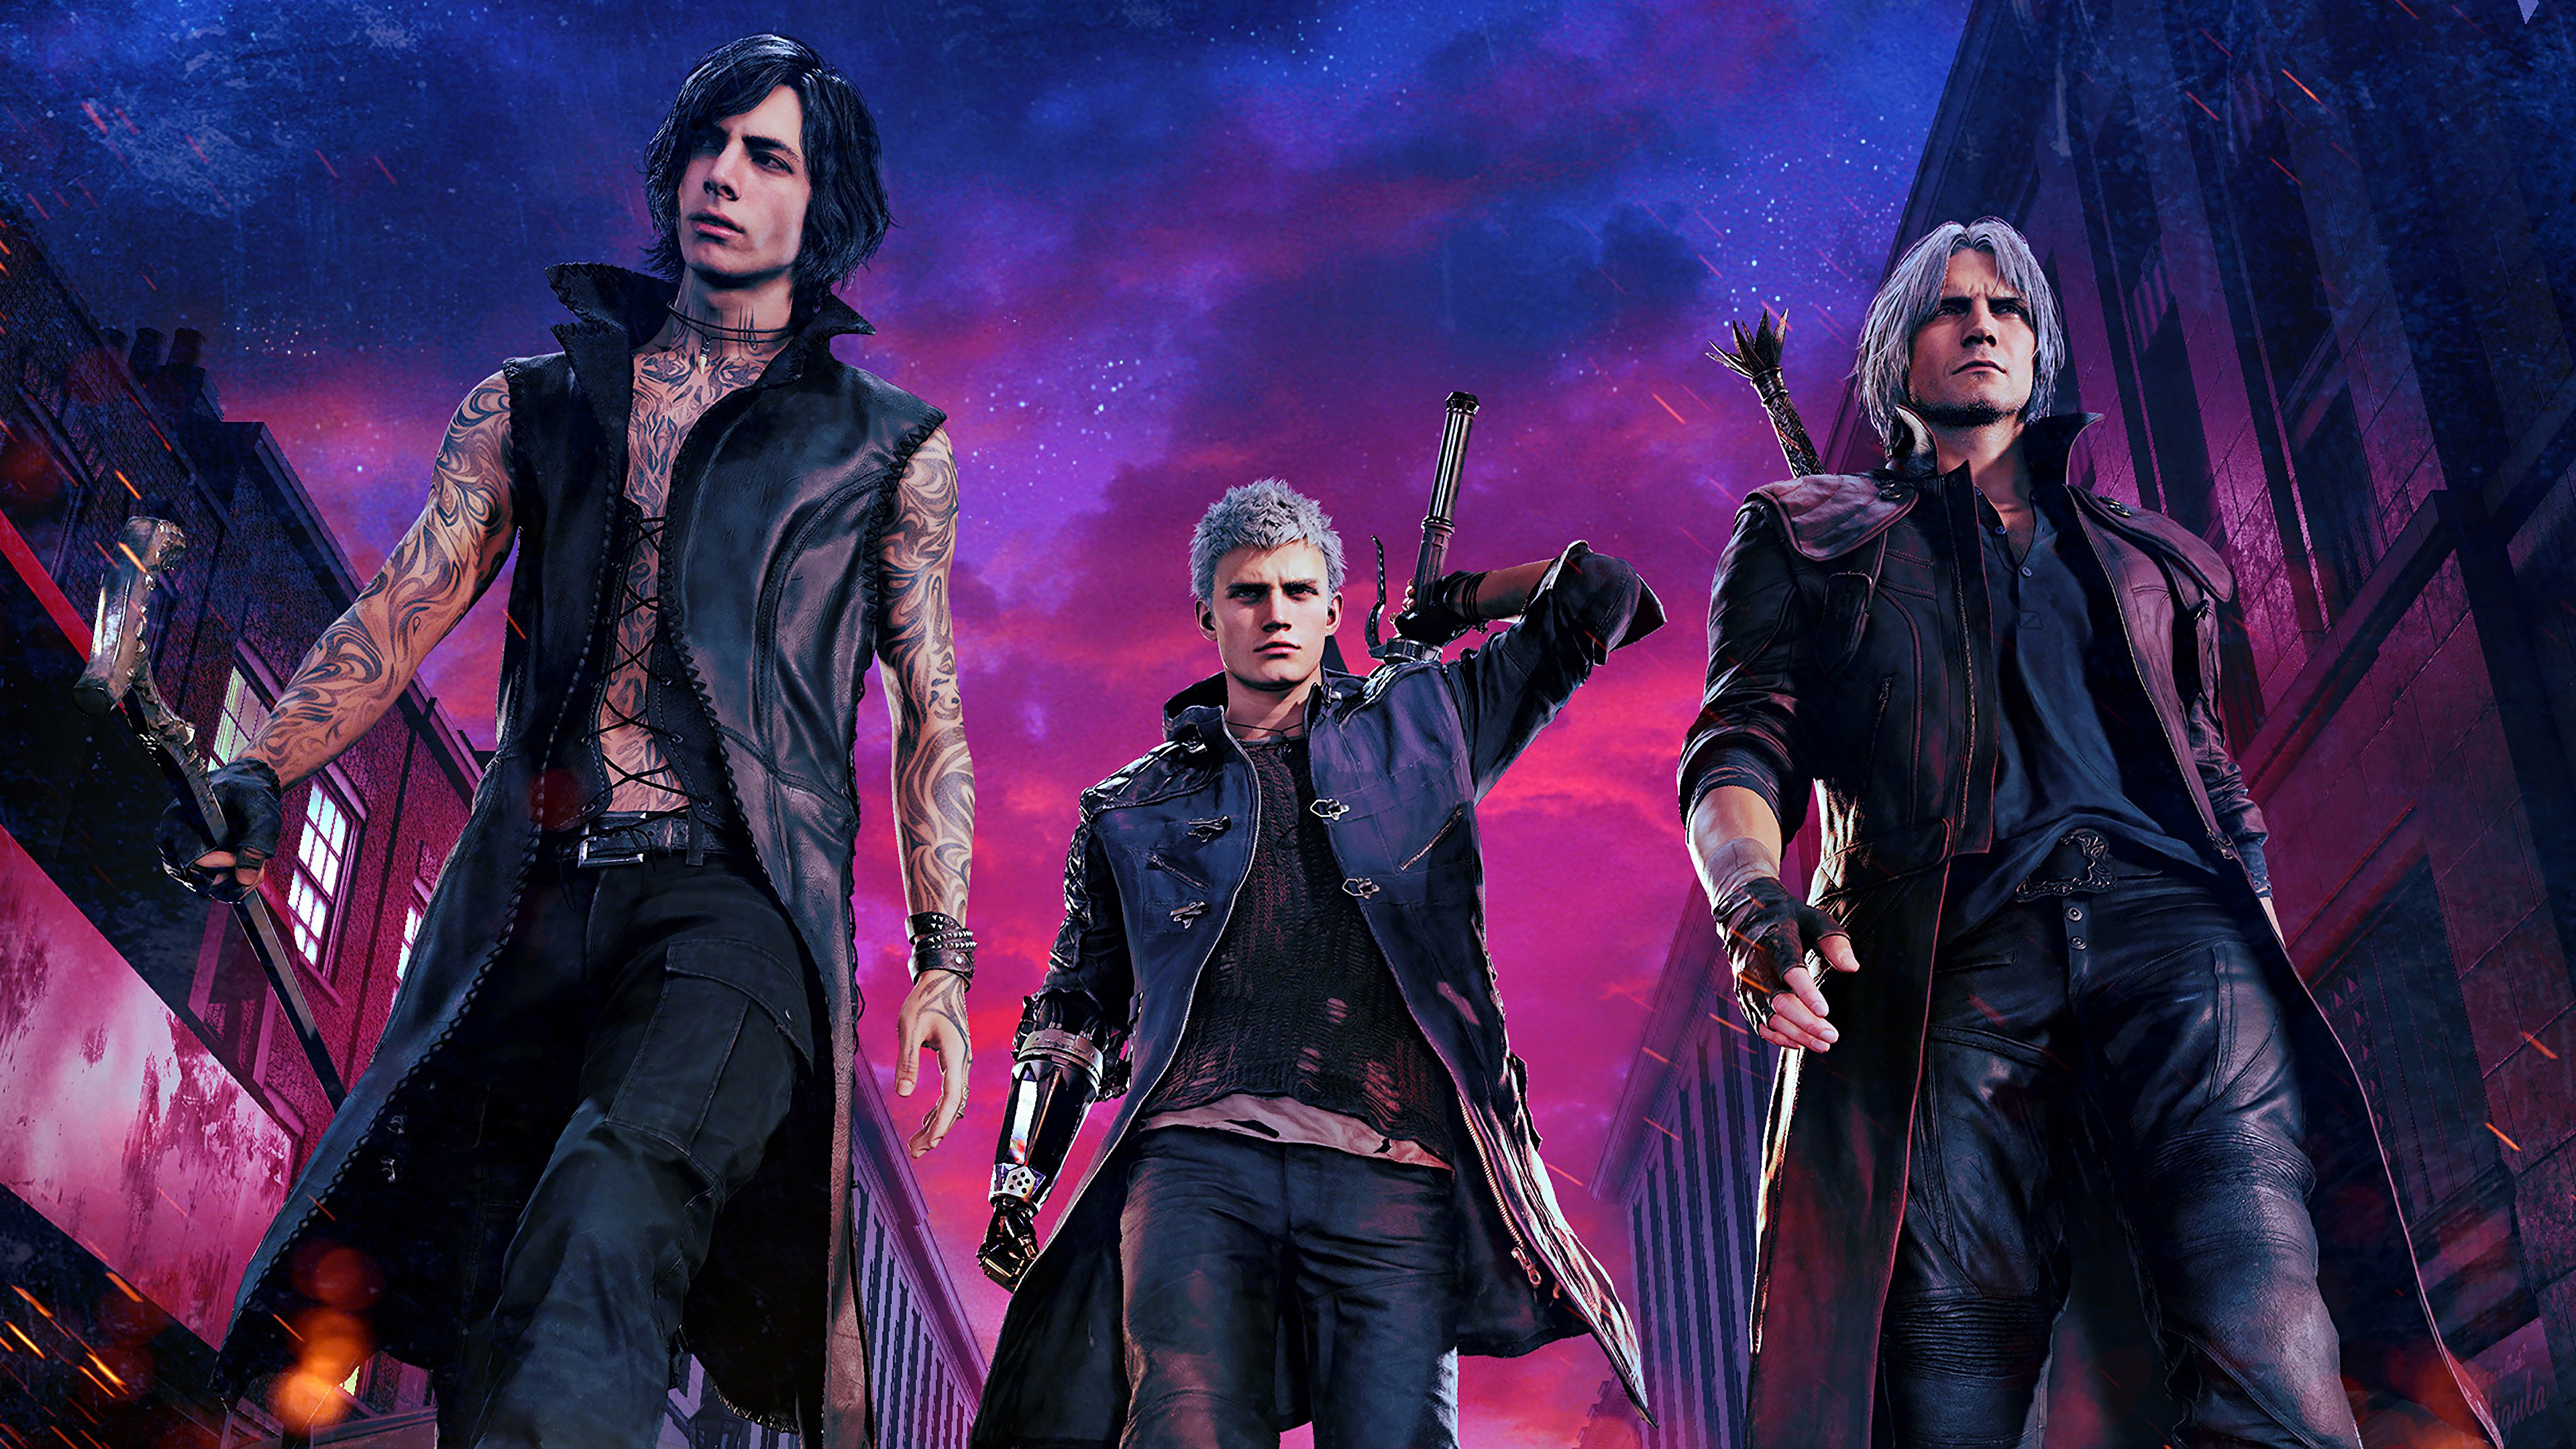 V Nero And Dante From Devil May Cry 5 Wallpaper 4k Ultra Hd